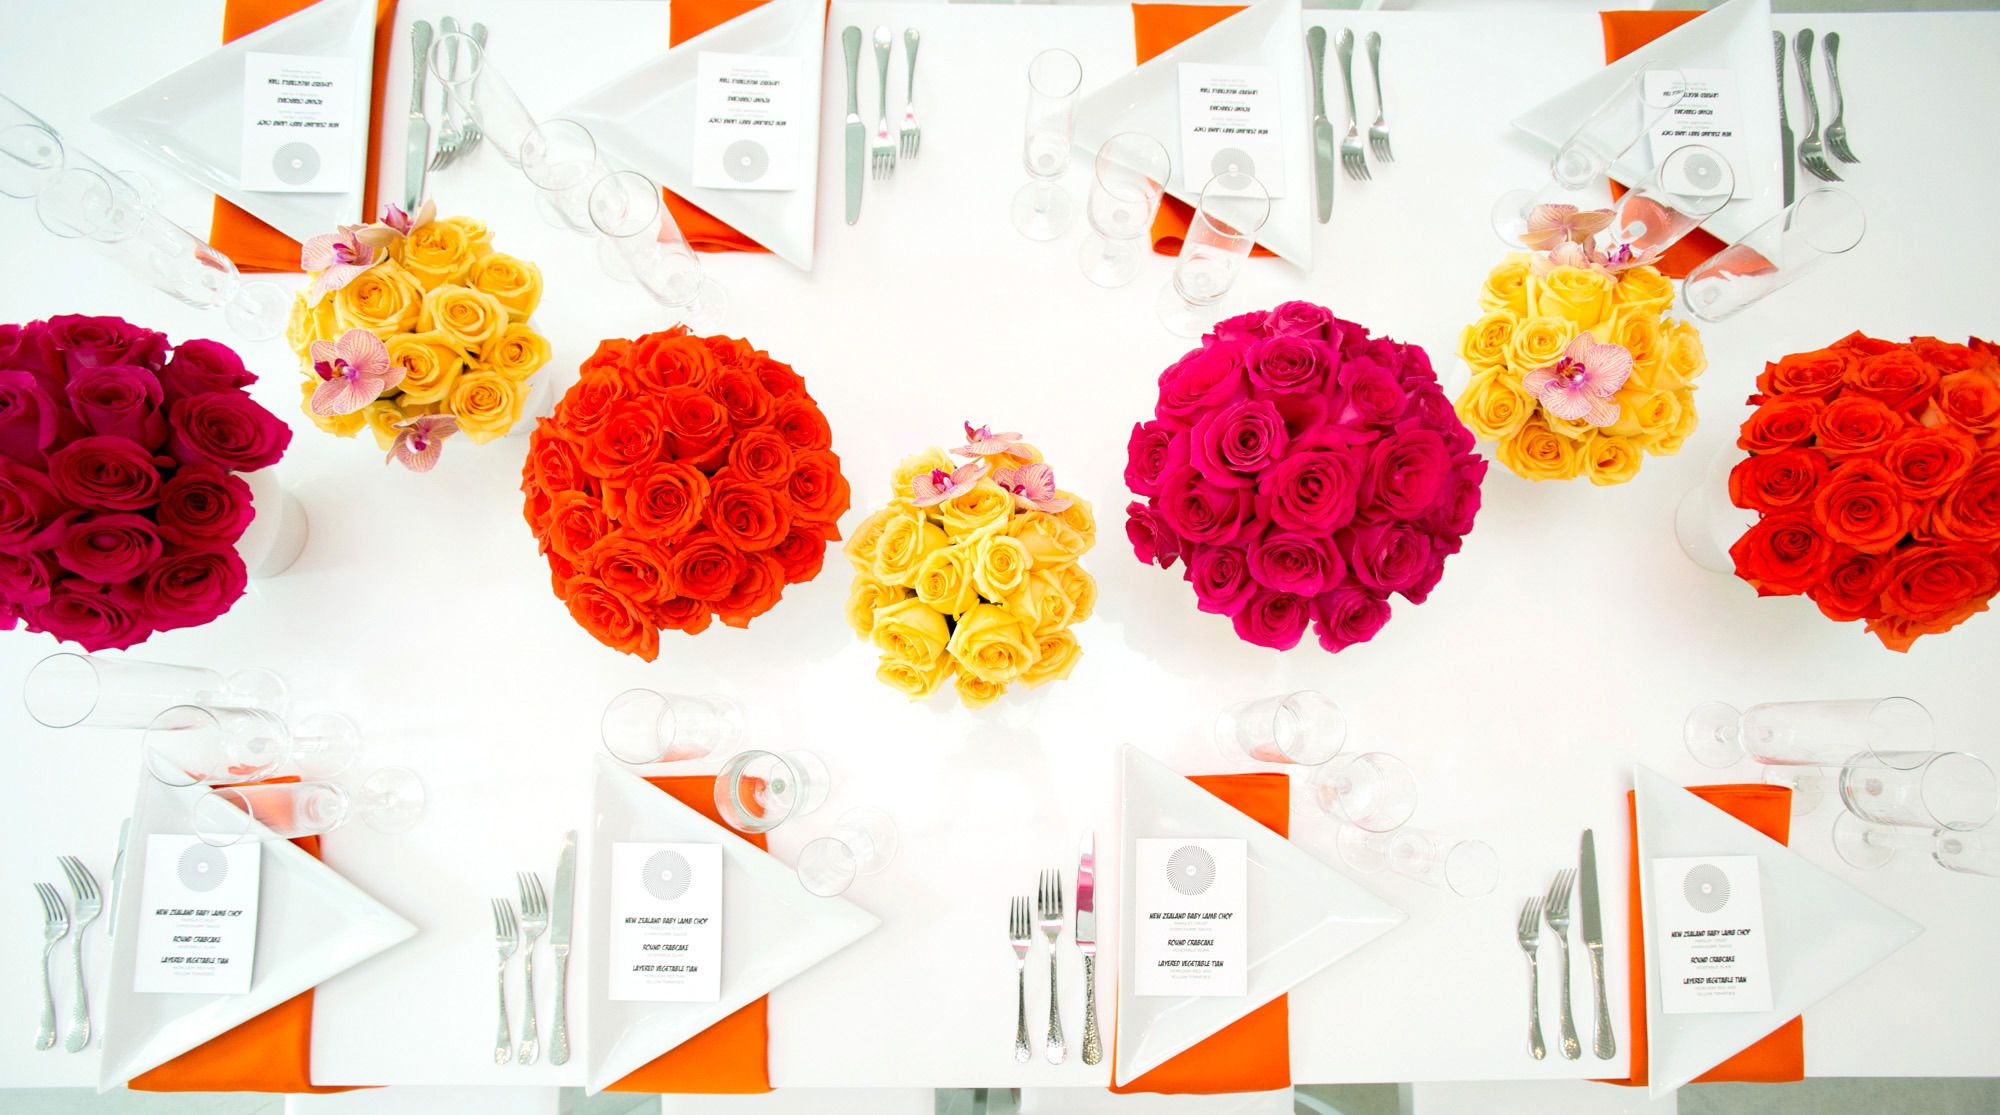 Pop Art Wedding Inspiration | Tablescapes, Centerpieces and Weddings